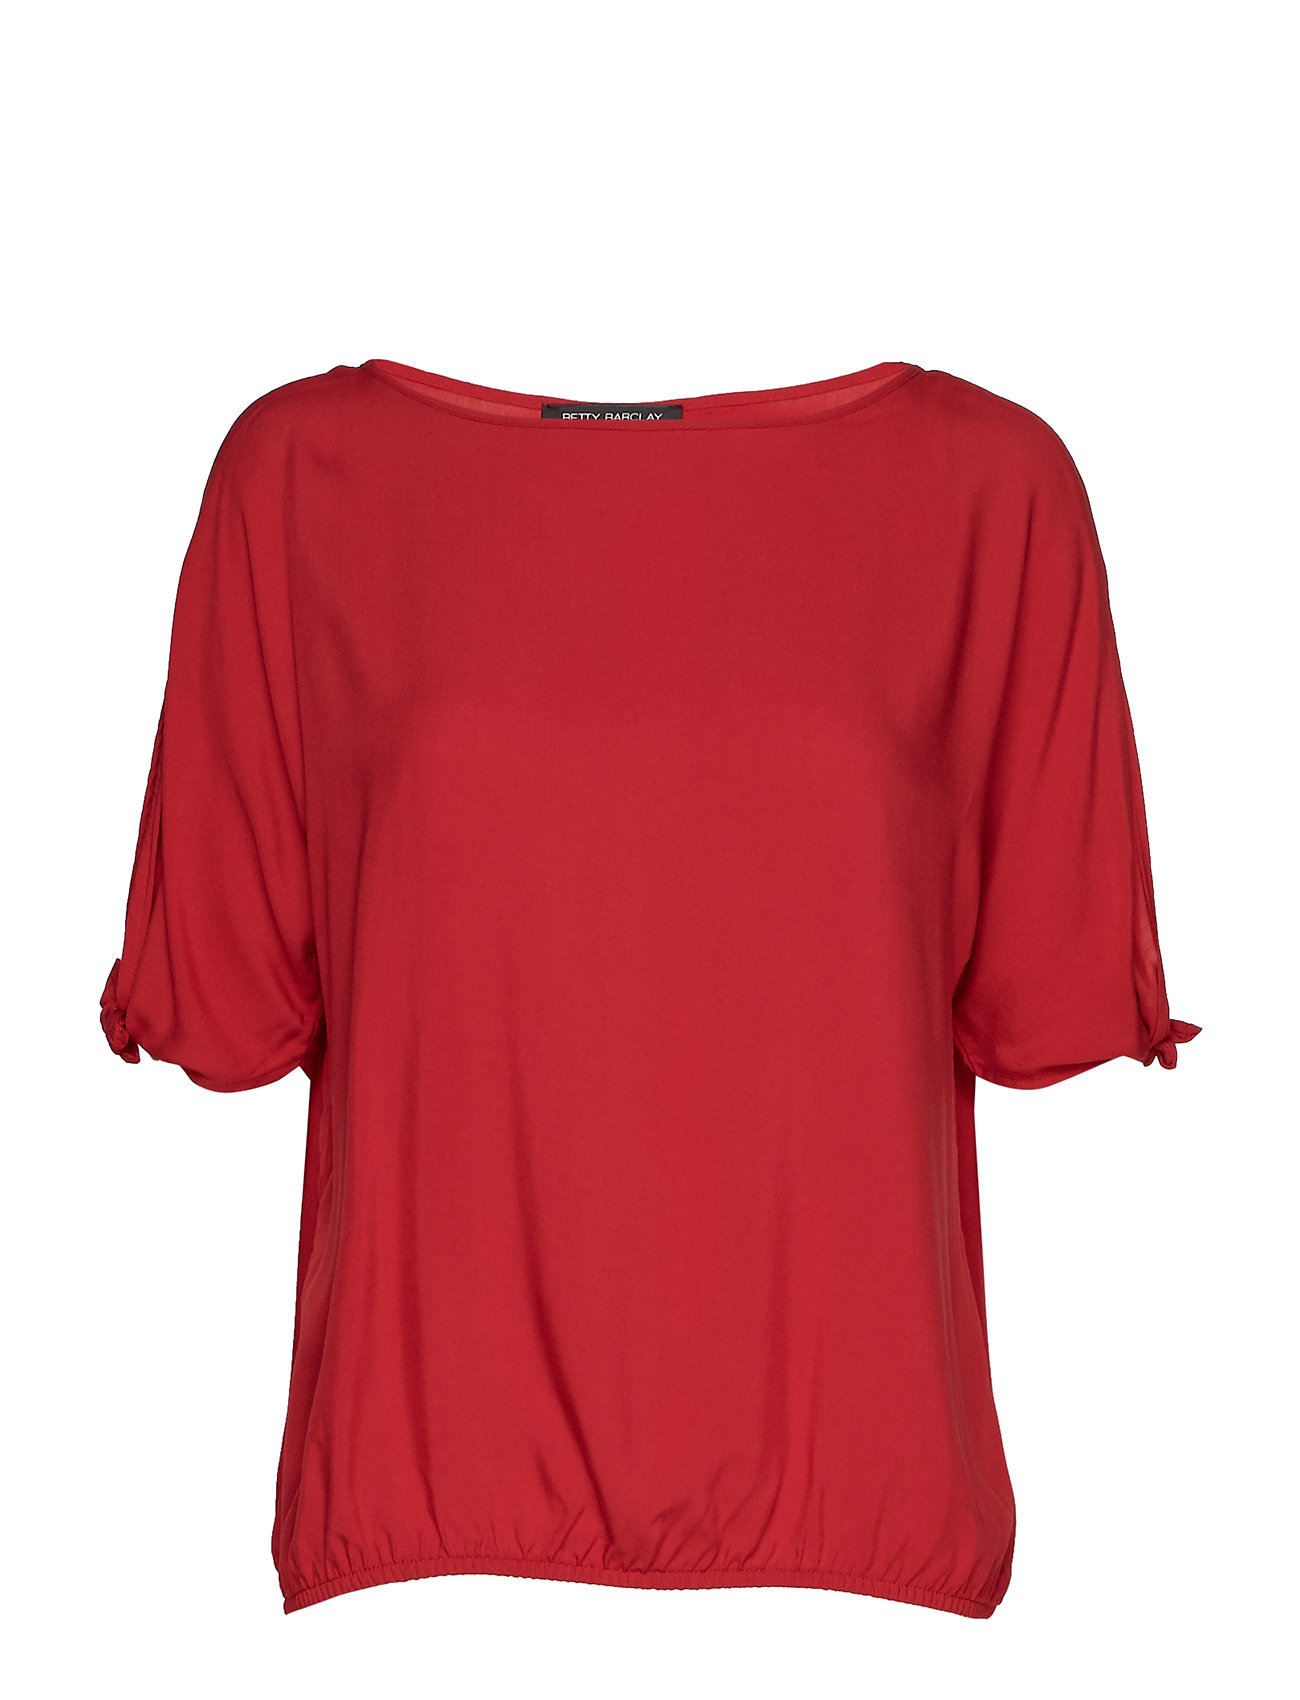 Betty Barclay Blouse Short 1/2 Sleeve - RED SCARLET